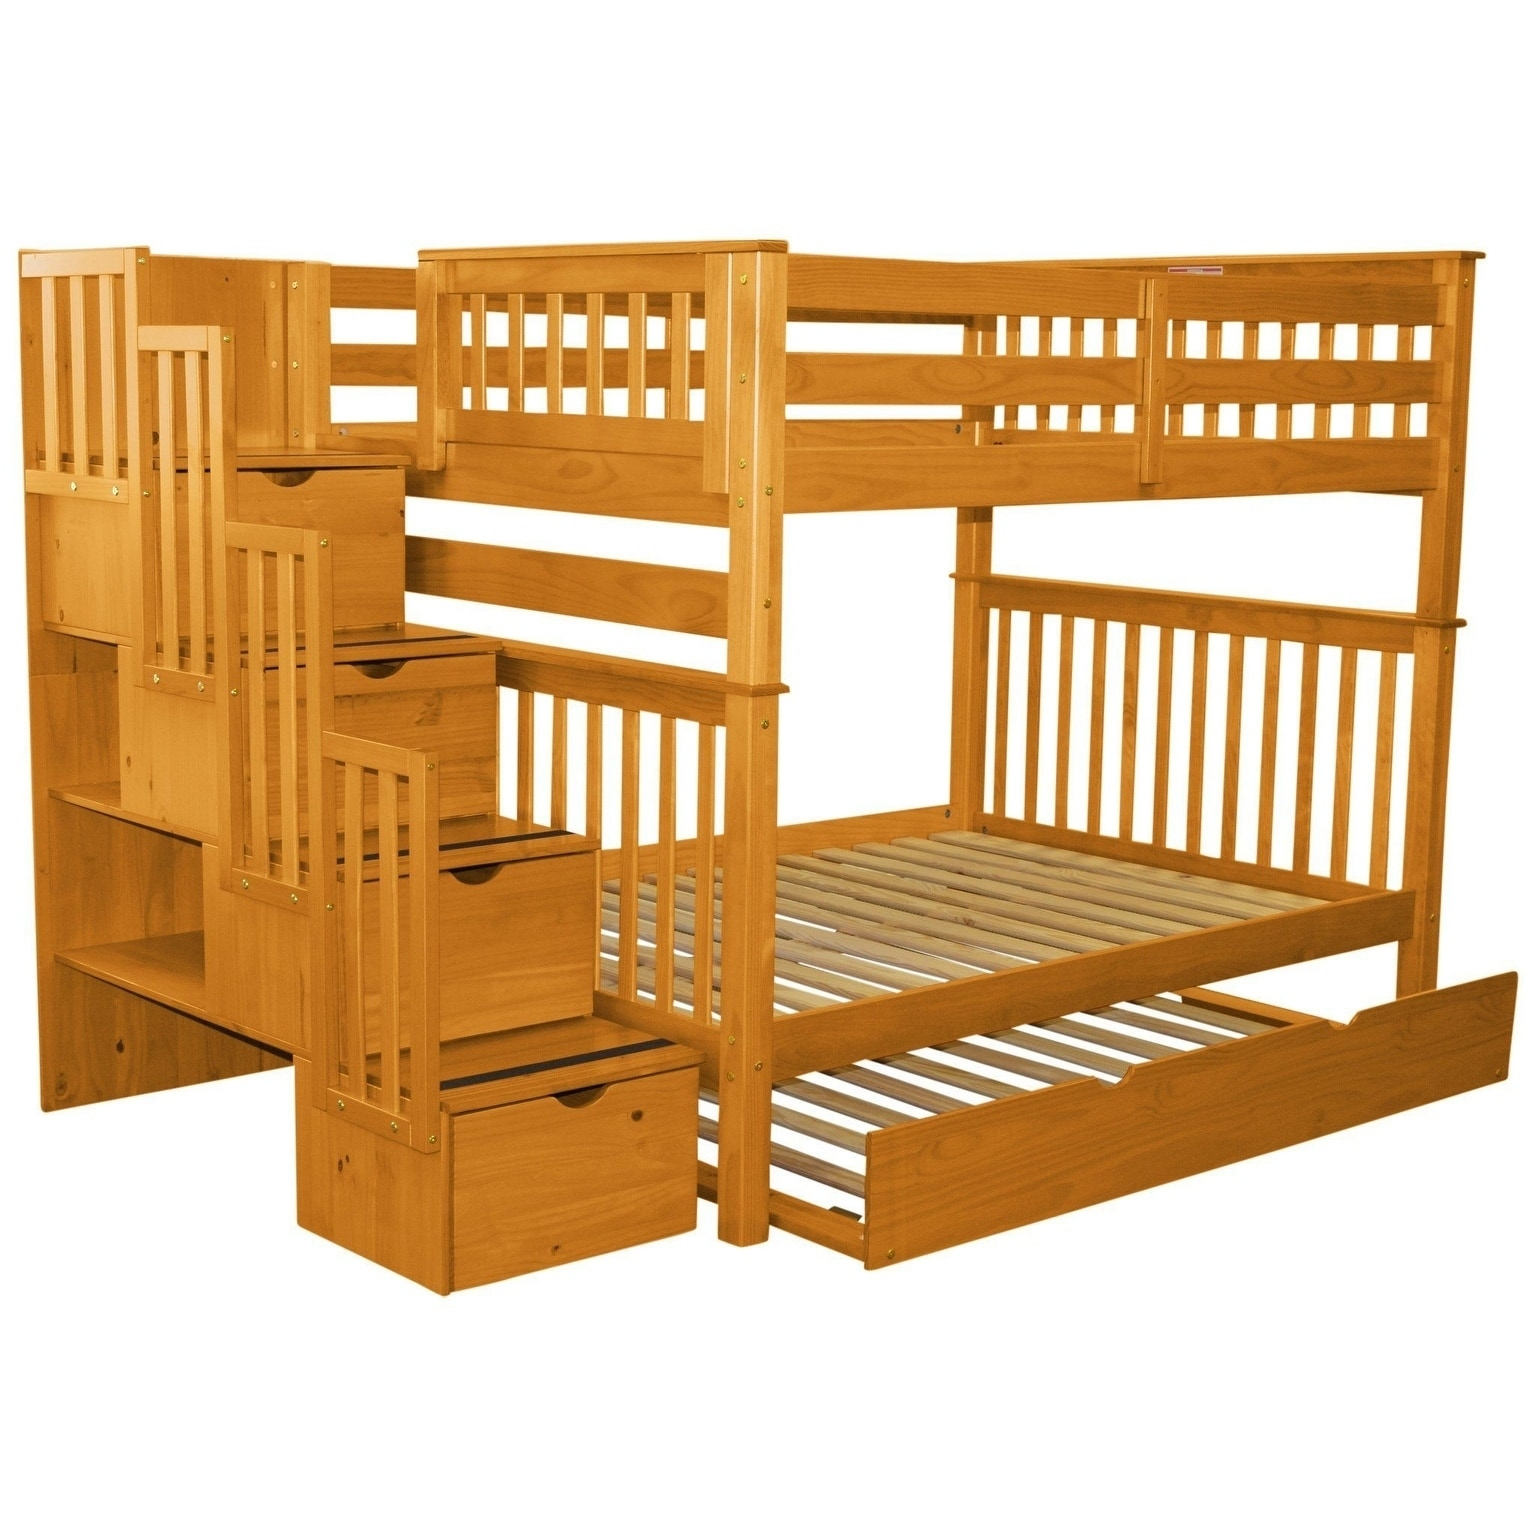 Picture of: Bedz King Stairway Bunk Beds Full Over Full With 4 Drawers In The Steps And A Twin Trundle Honey On Sale Overstock 22669708